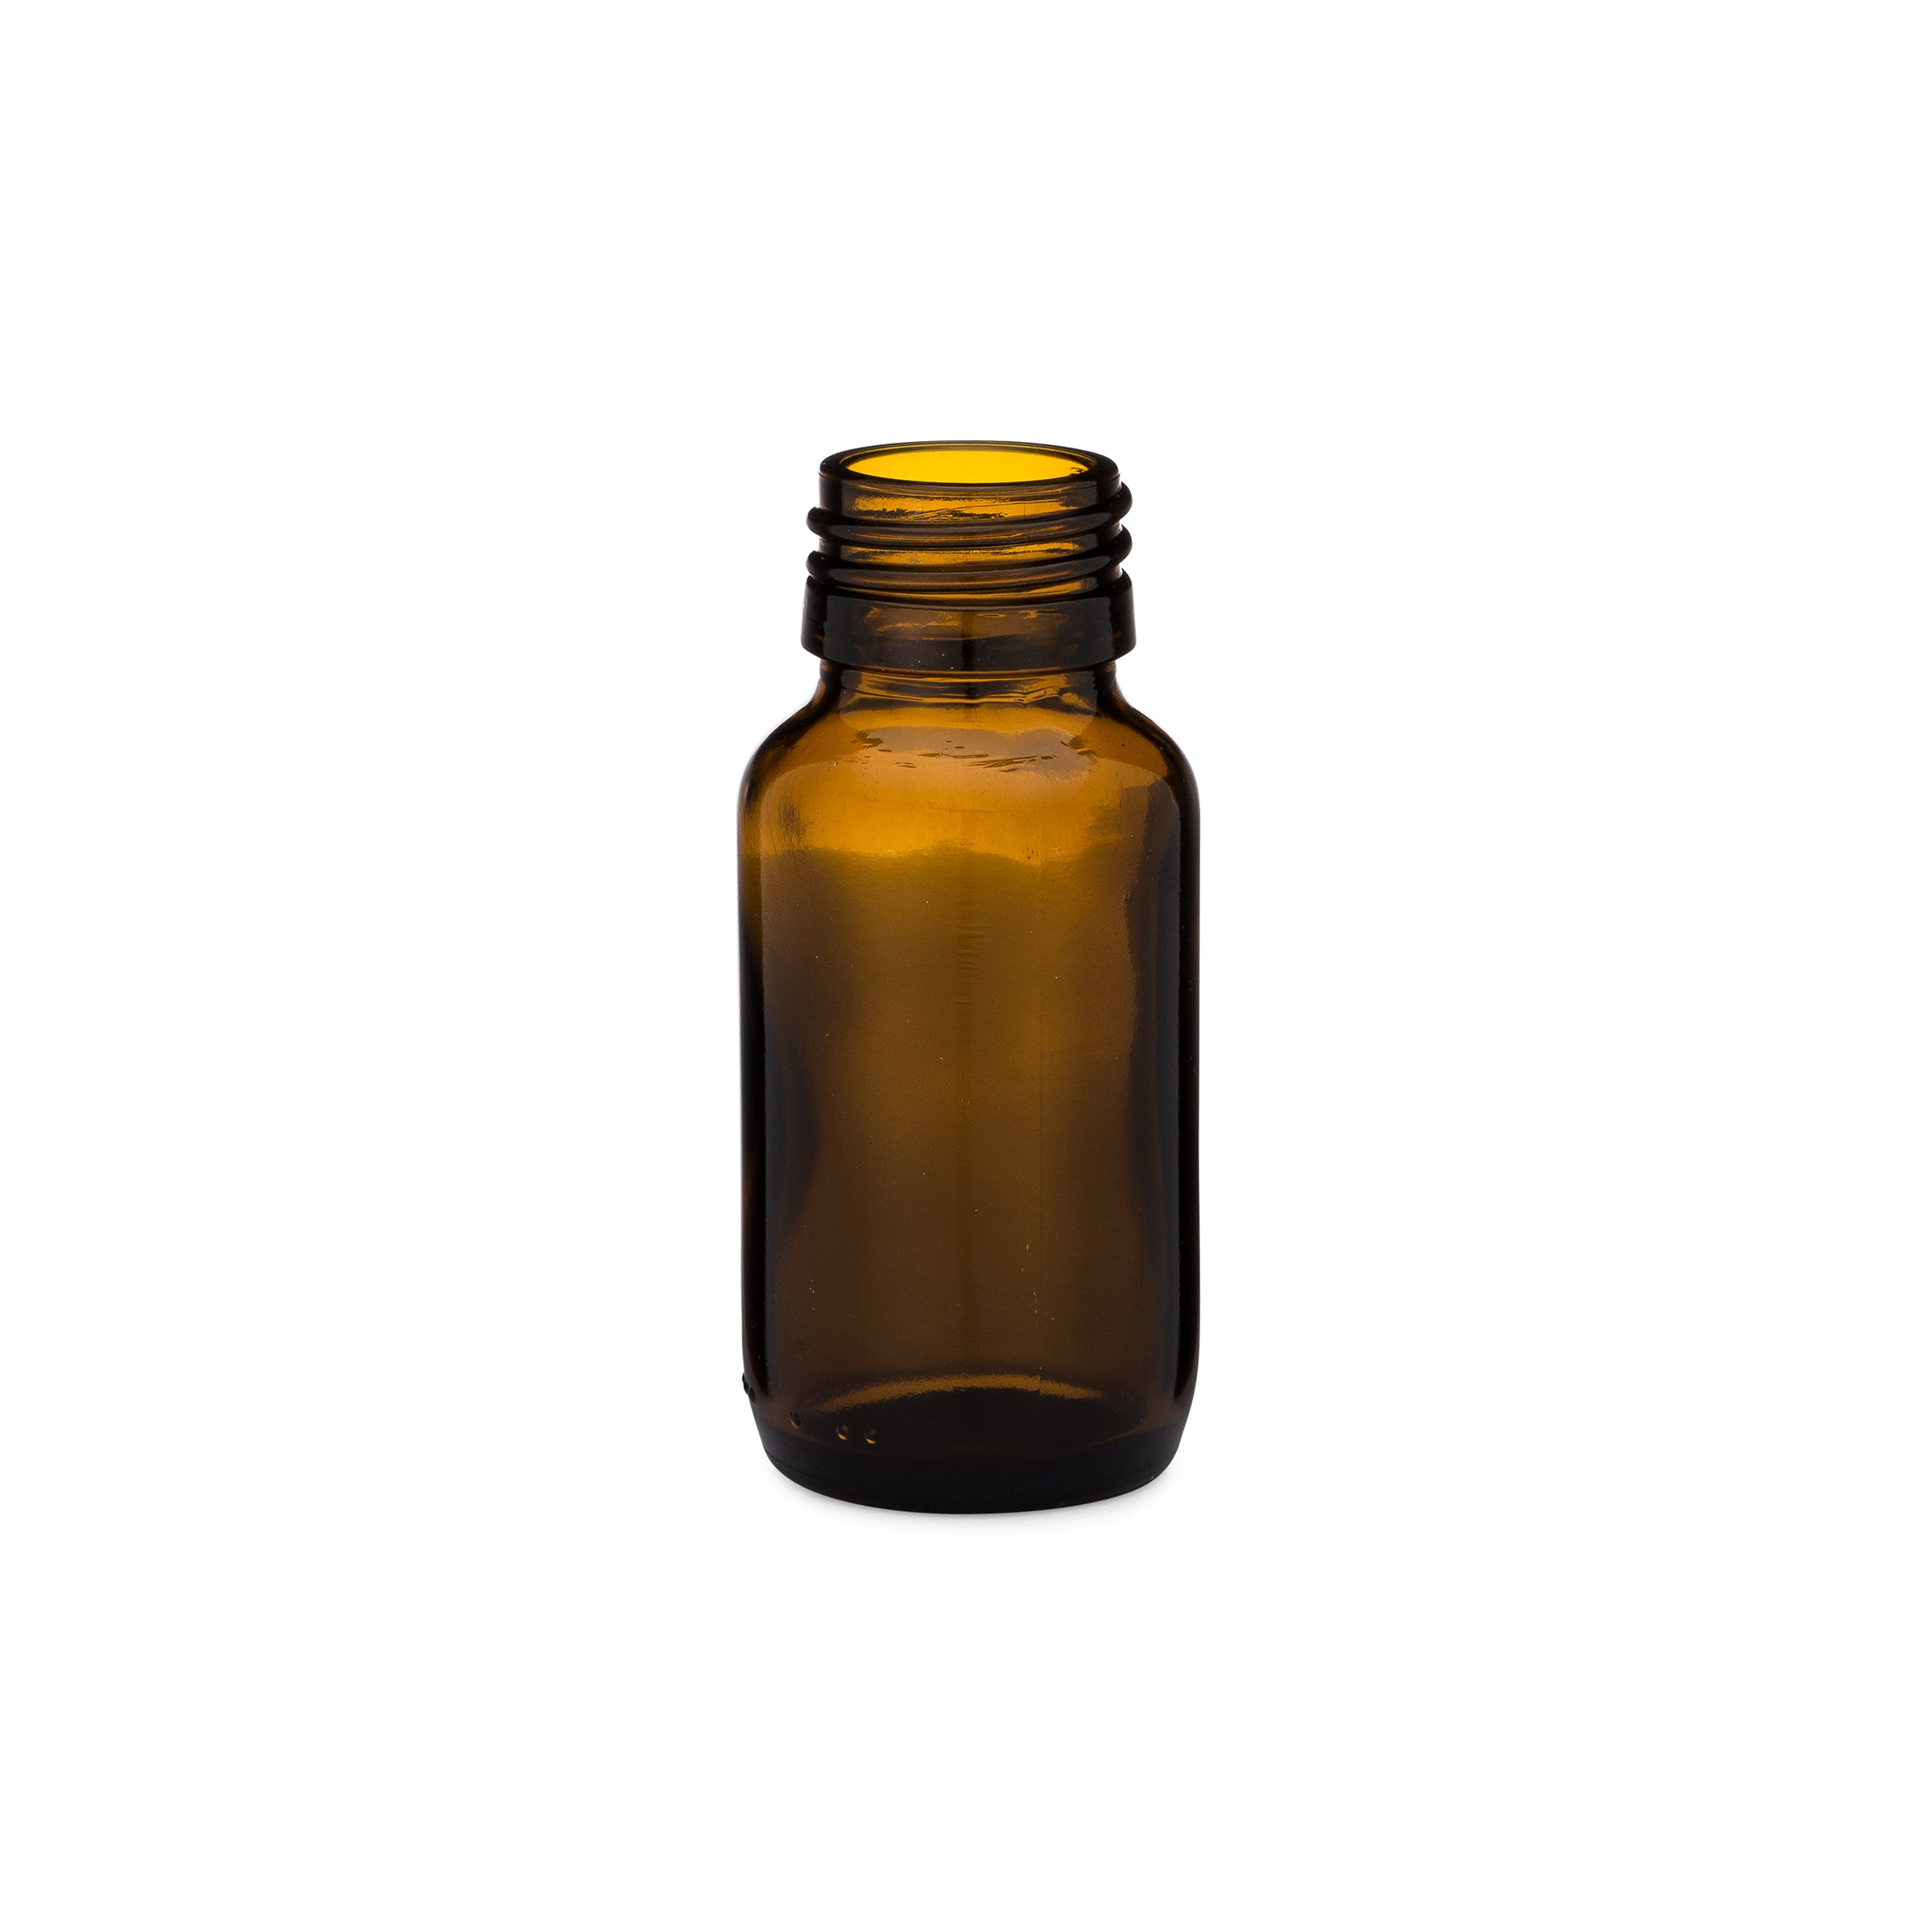 50ml Amber Syrup Bottle - 4-16149